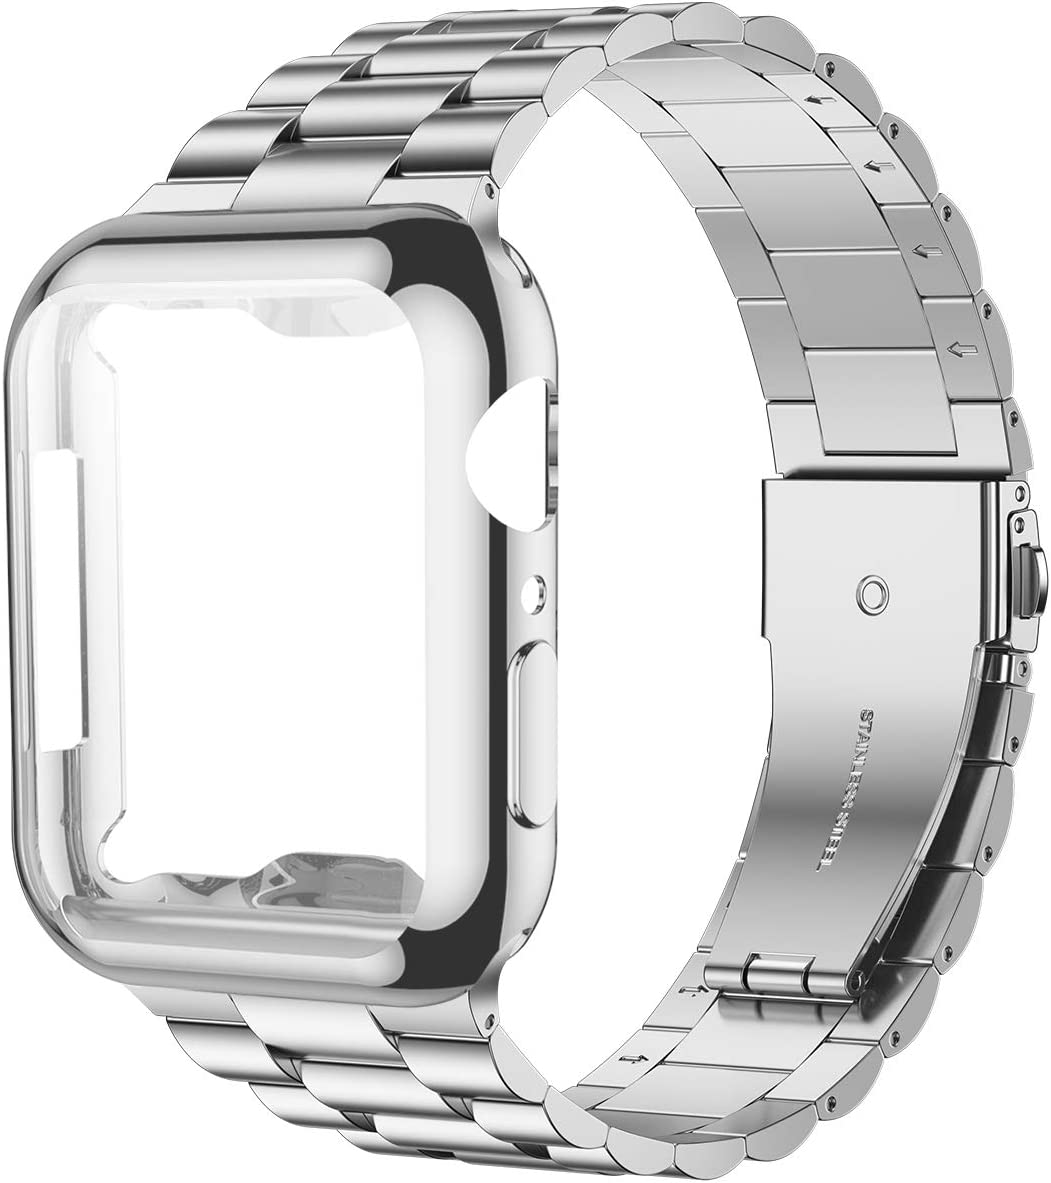 iiteeology Compatible with Apple Watch Band 42mm Series 3 2 1, Upgraded Stainless Steel Link Replacement Band with iWatch Screen Protector Case Silver/Silver